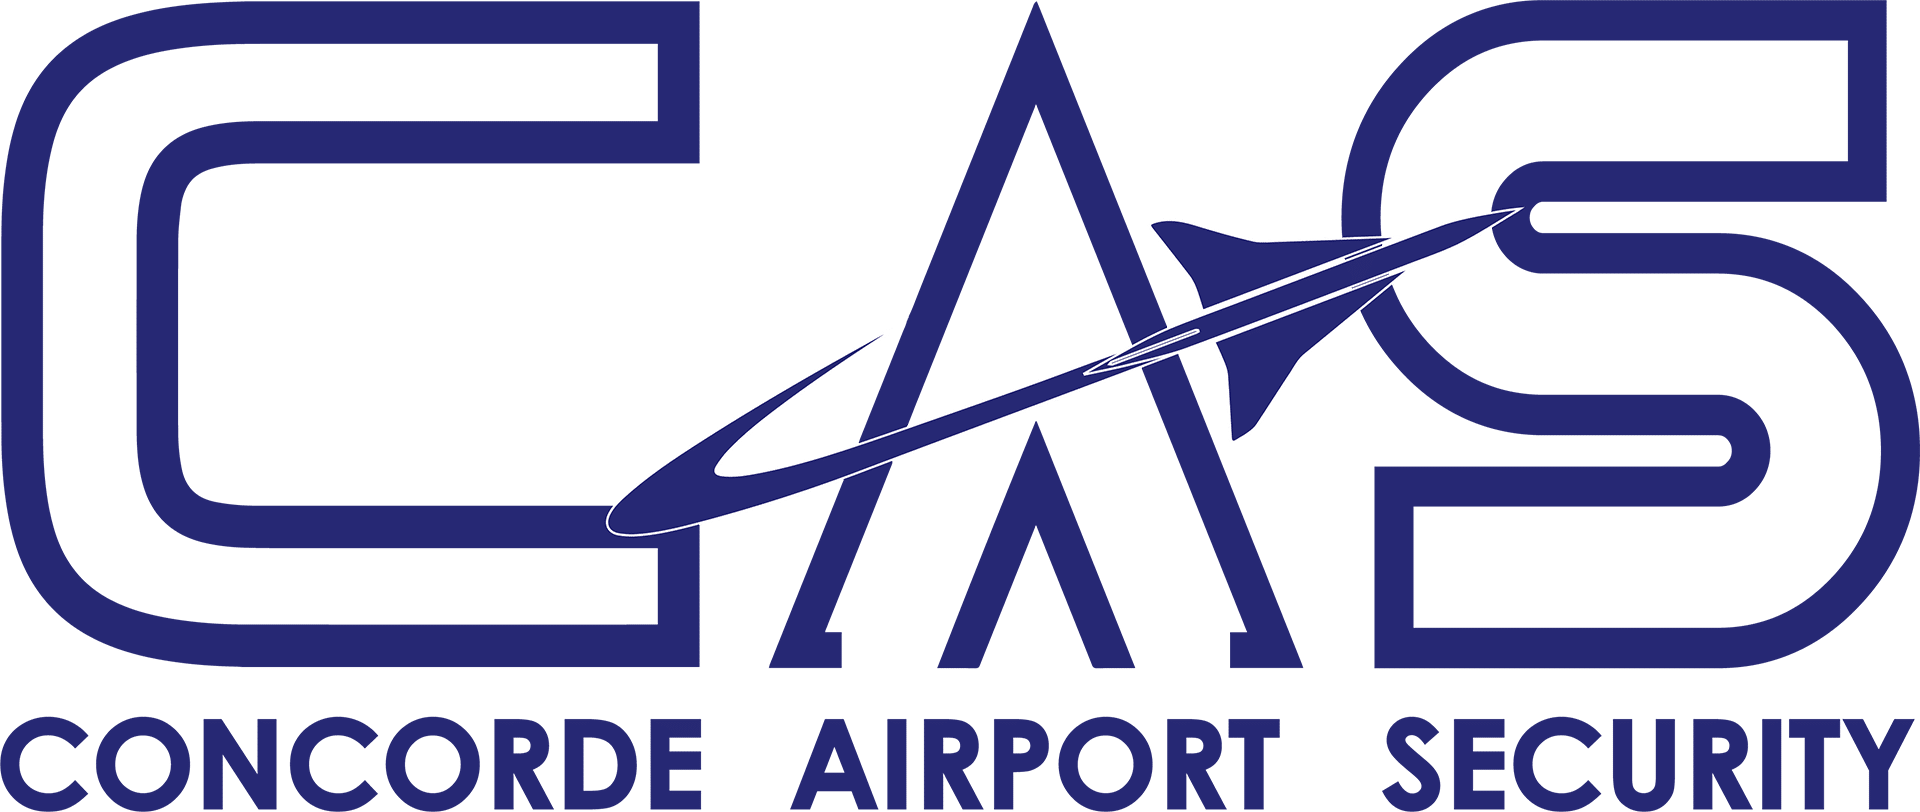 Concorde Airport Security Logo